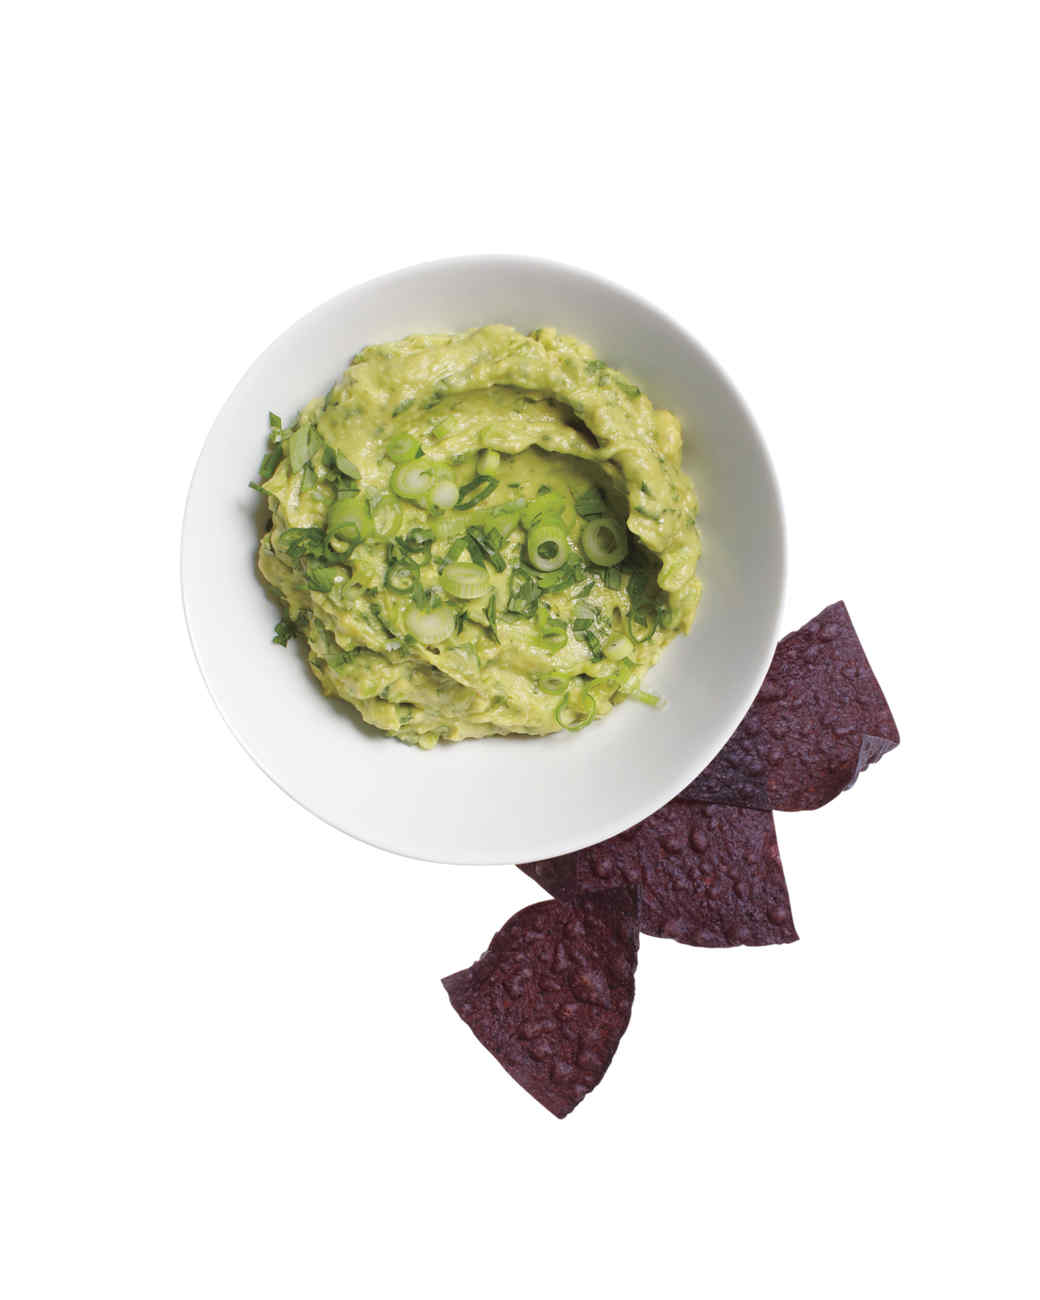 Mashed Avocado with Hummus